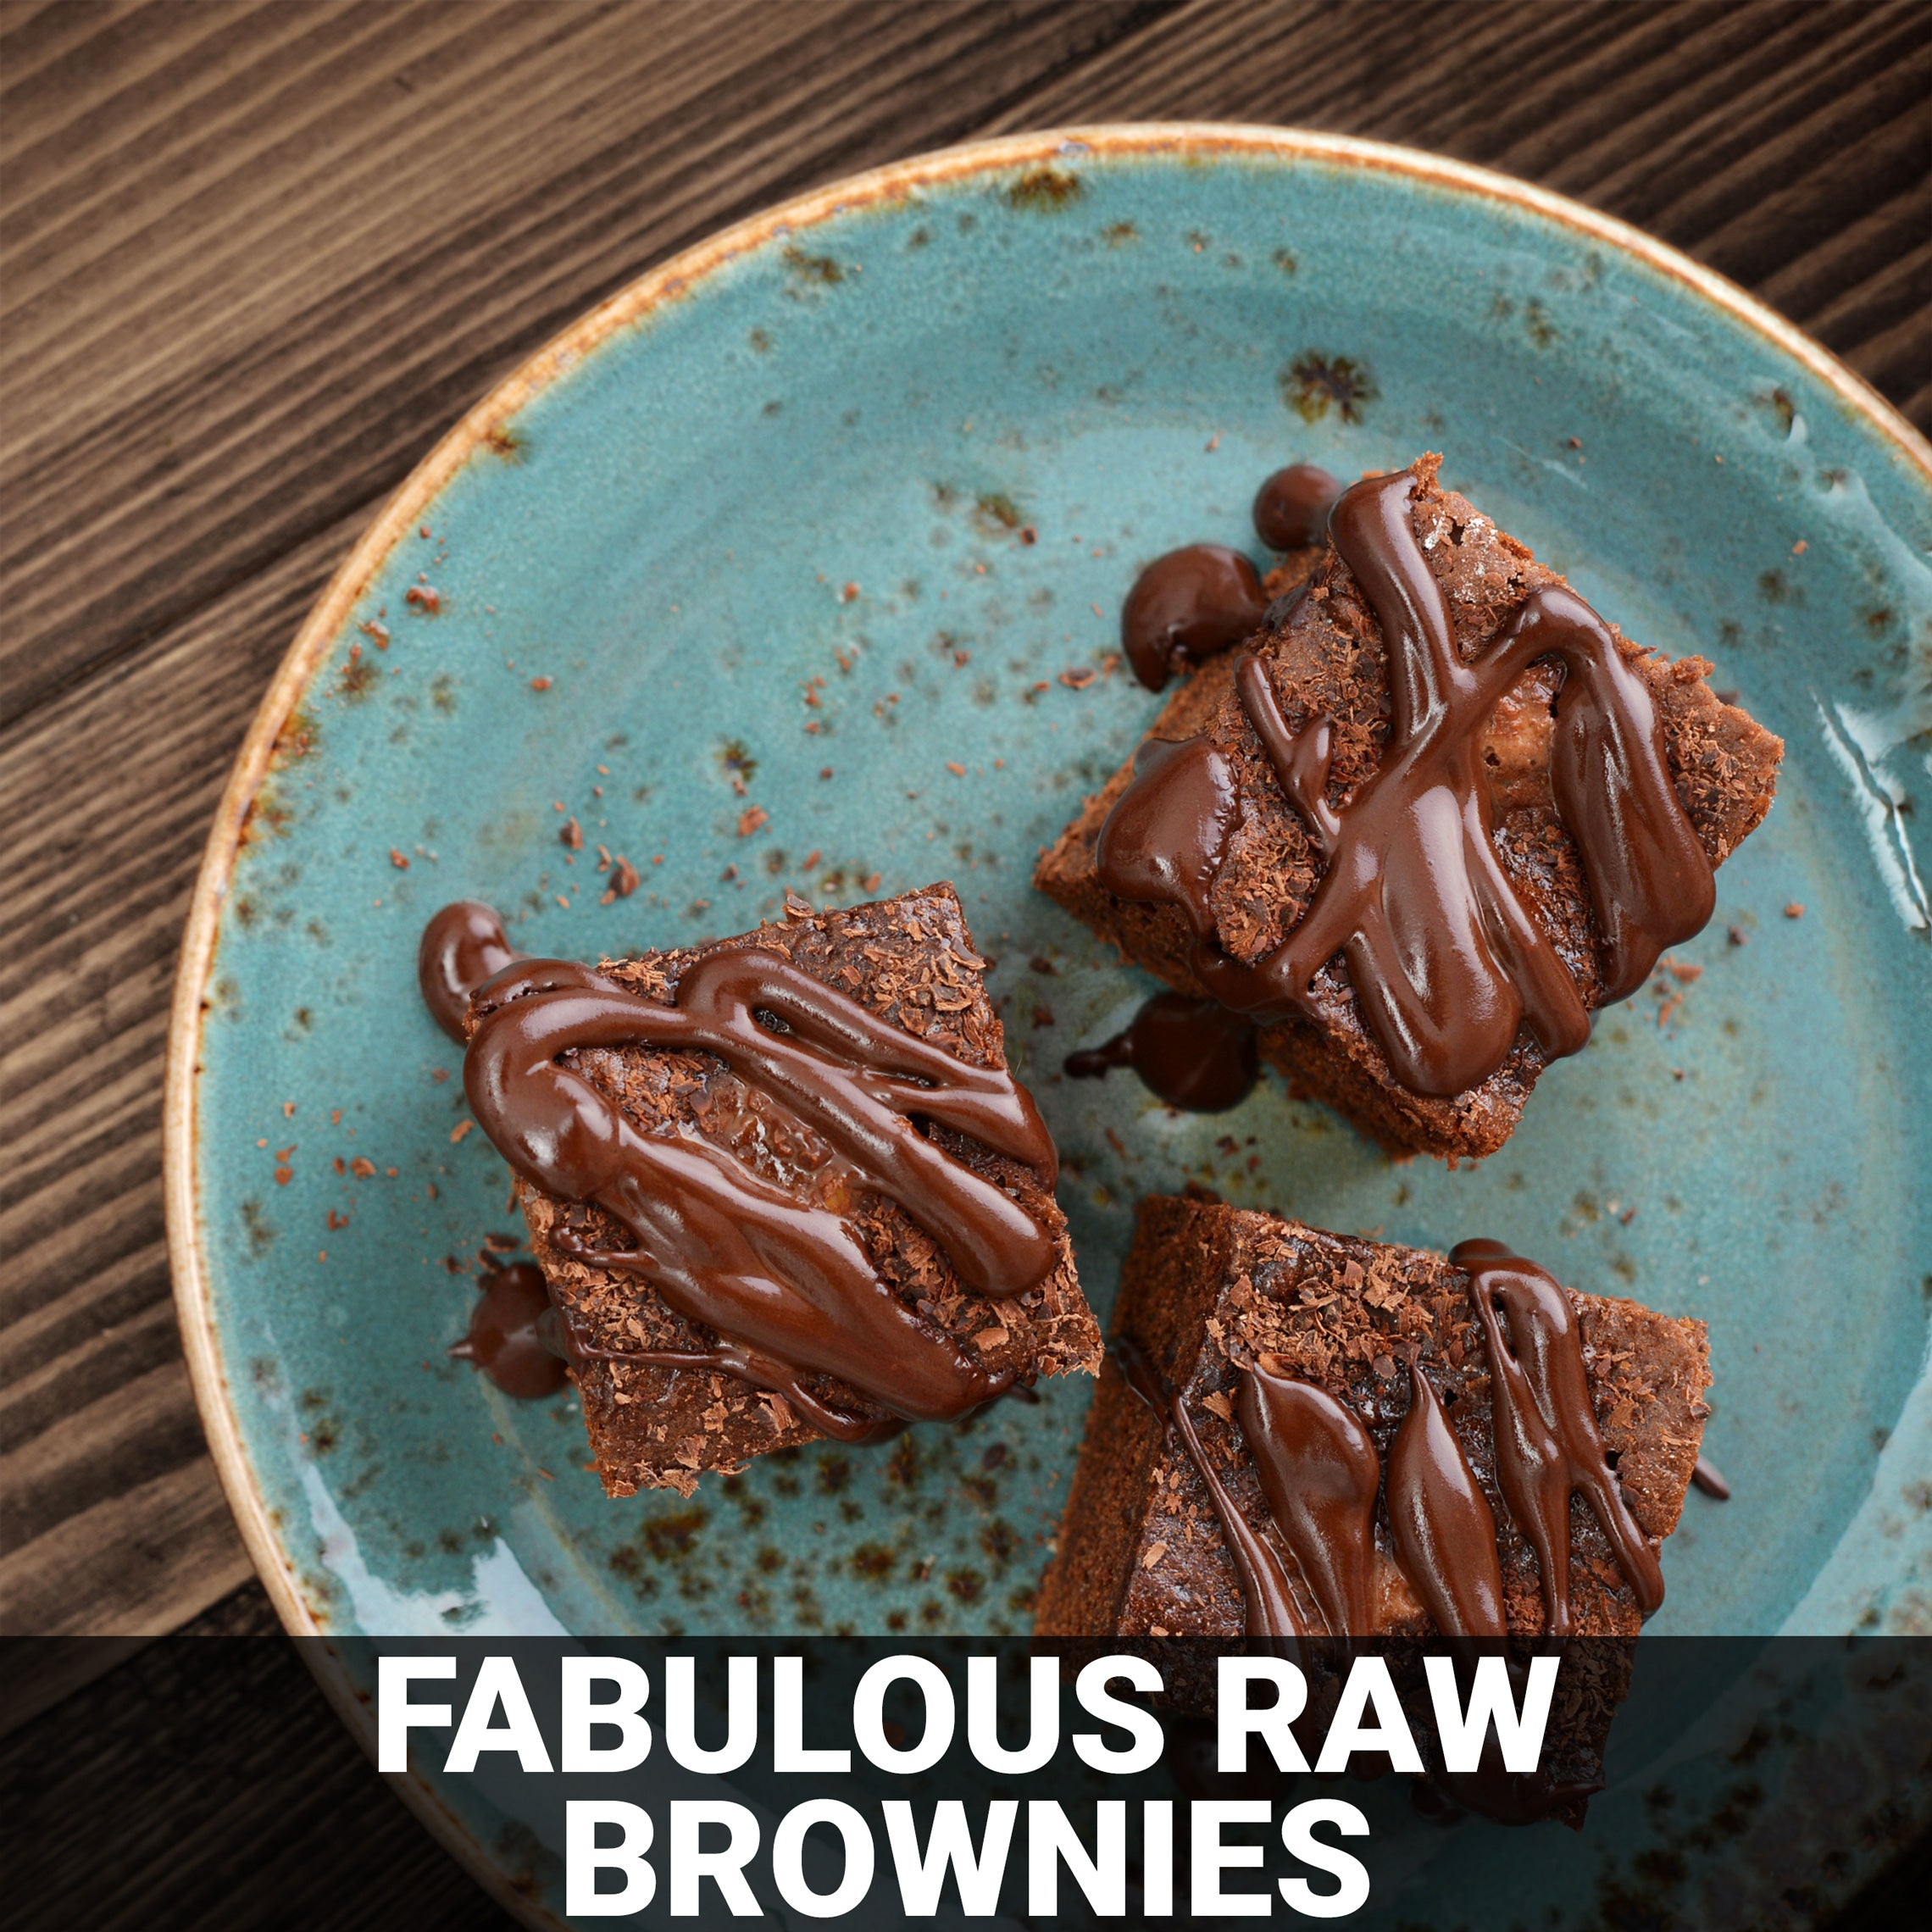 Fabulous Raw Brownies Recipe - Foods Alive